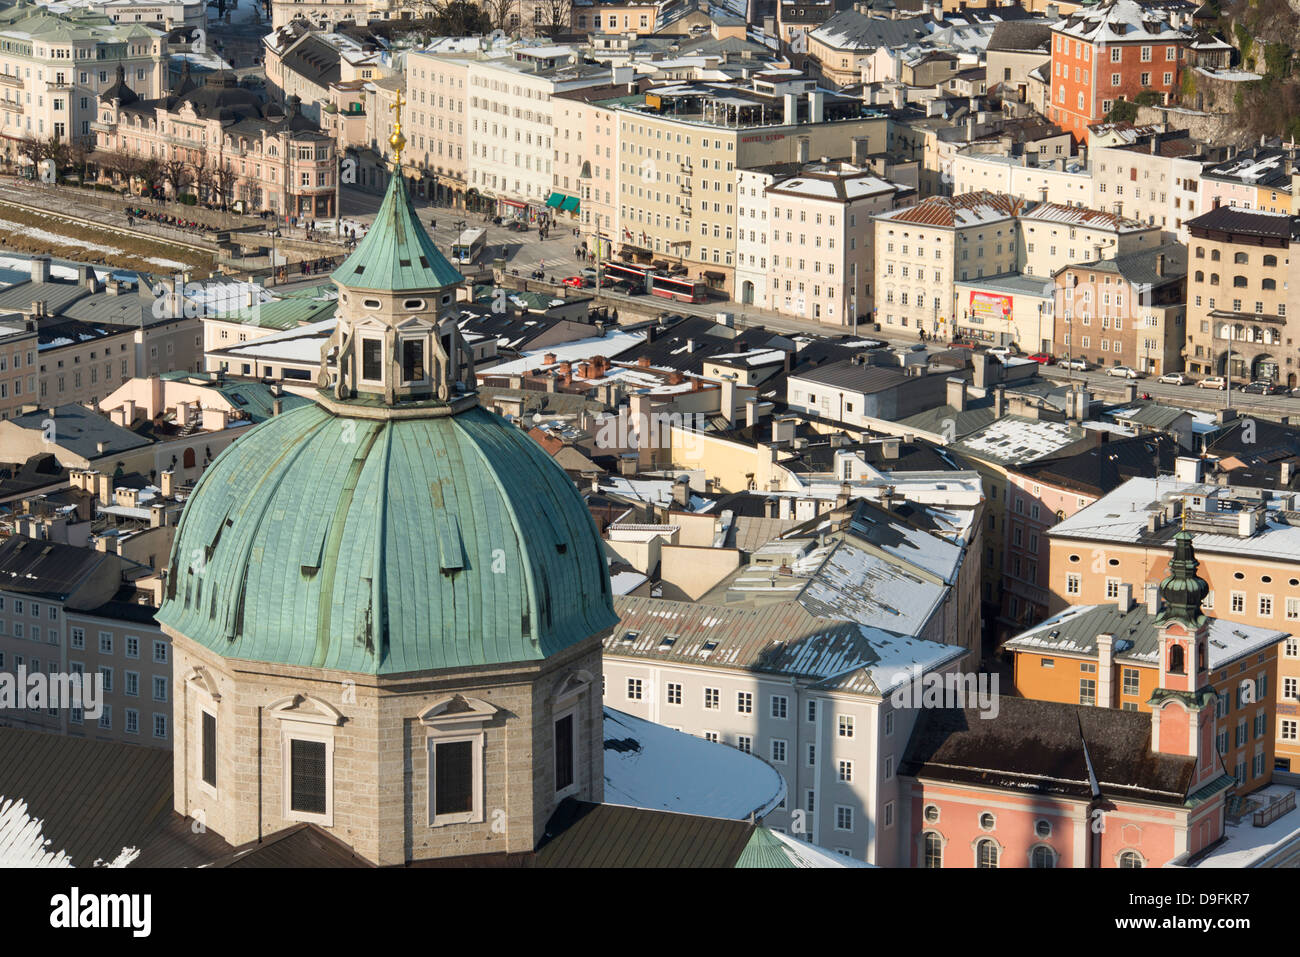 An aerial view of one of the domes of the Salzburg Cathedral and surrounding buildings in the Altstadt, Salzburg, - Stock Image